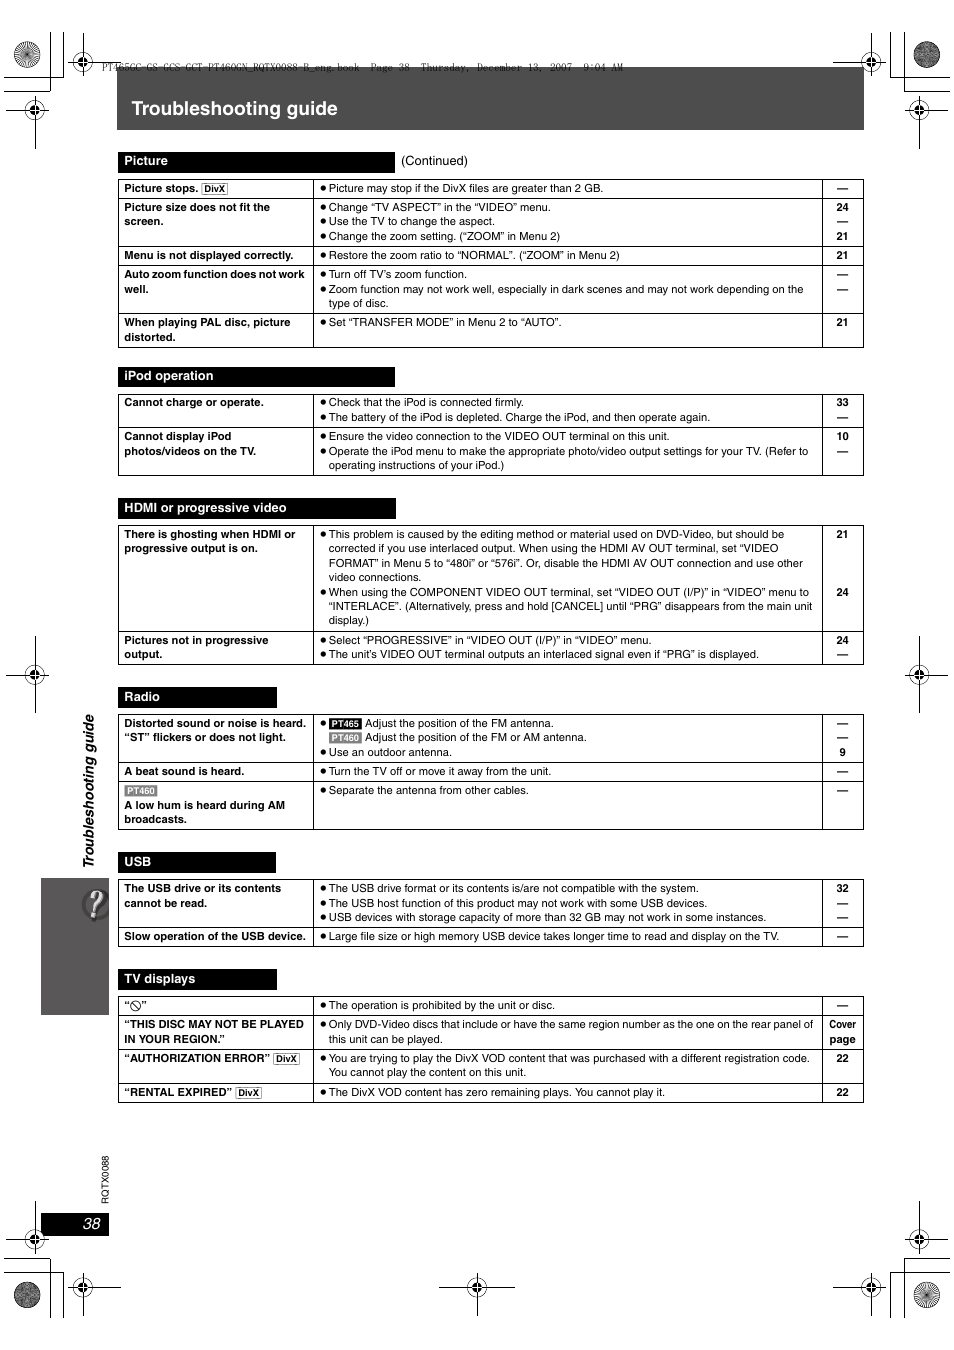 Troubleshooting guide | Panasonic SC-PT465 User Manual | Page 38 / 44